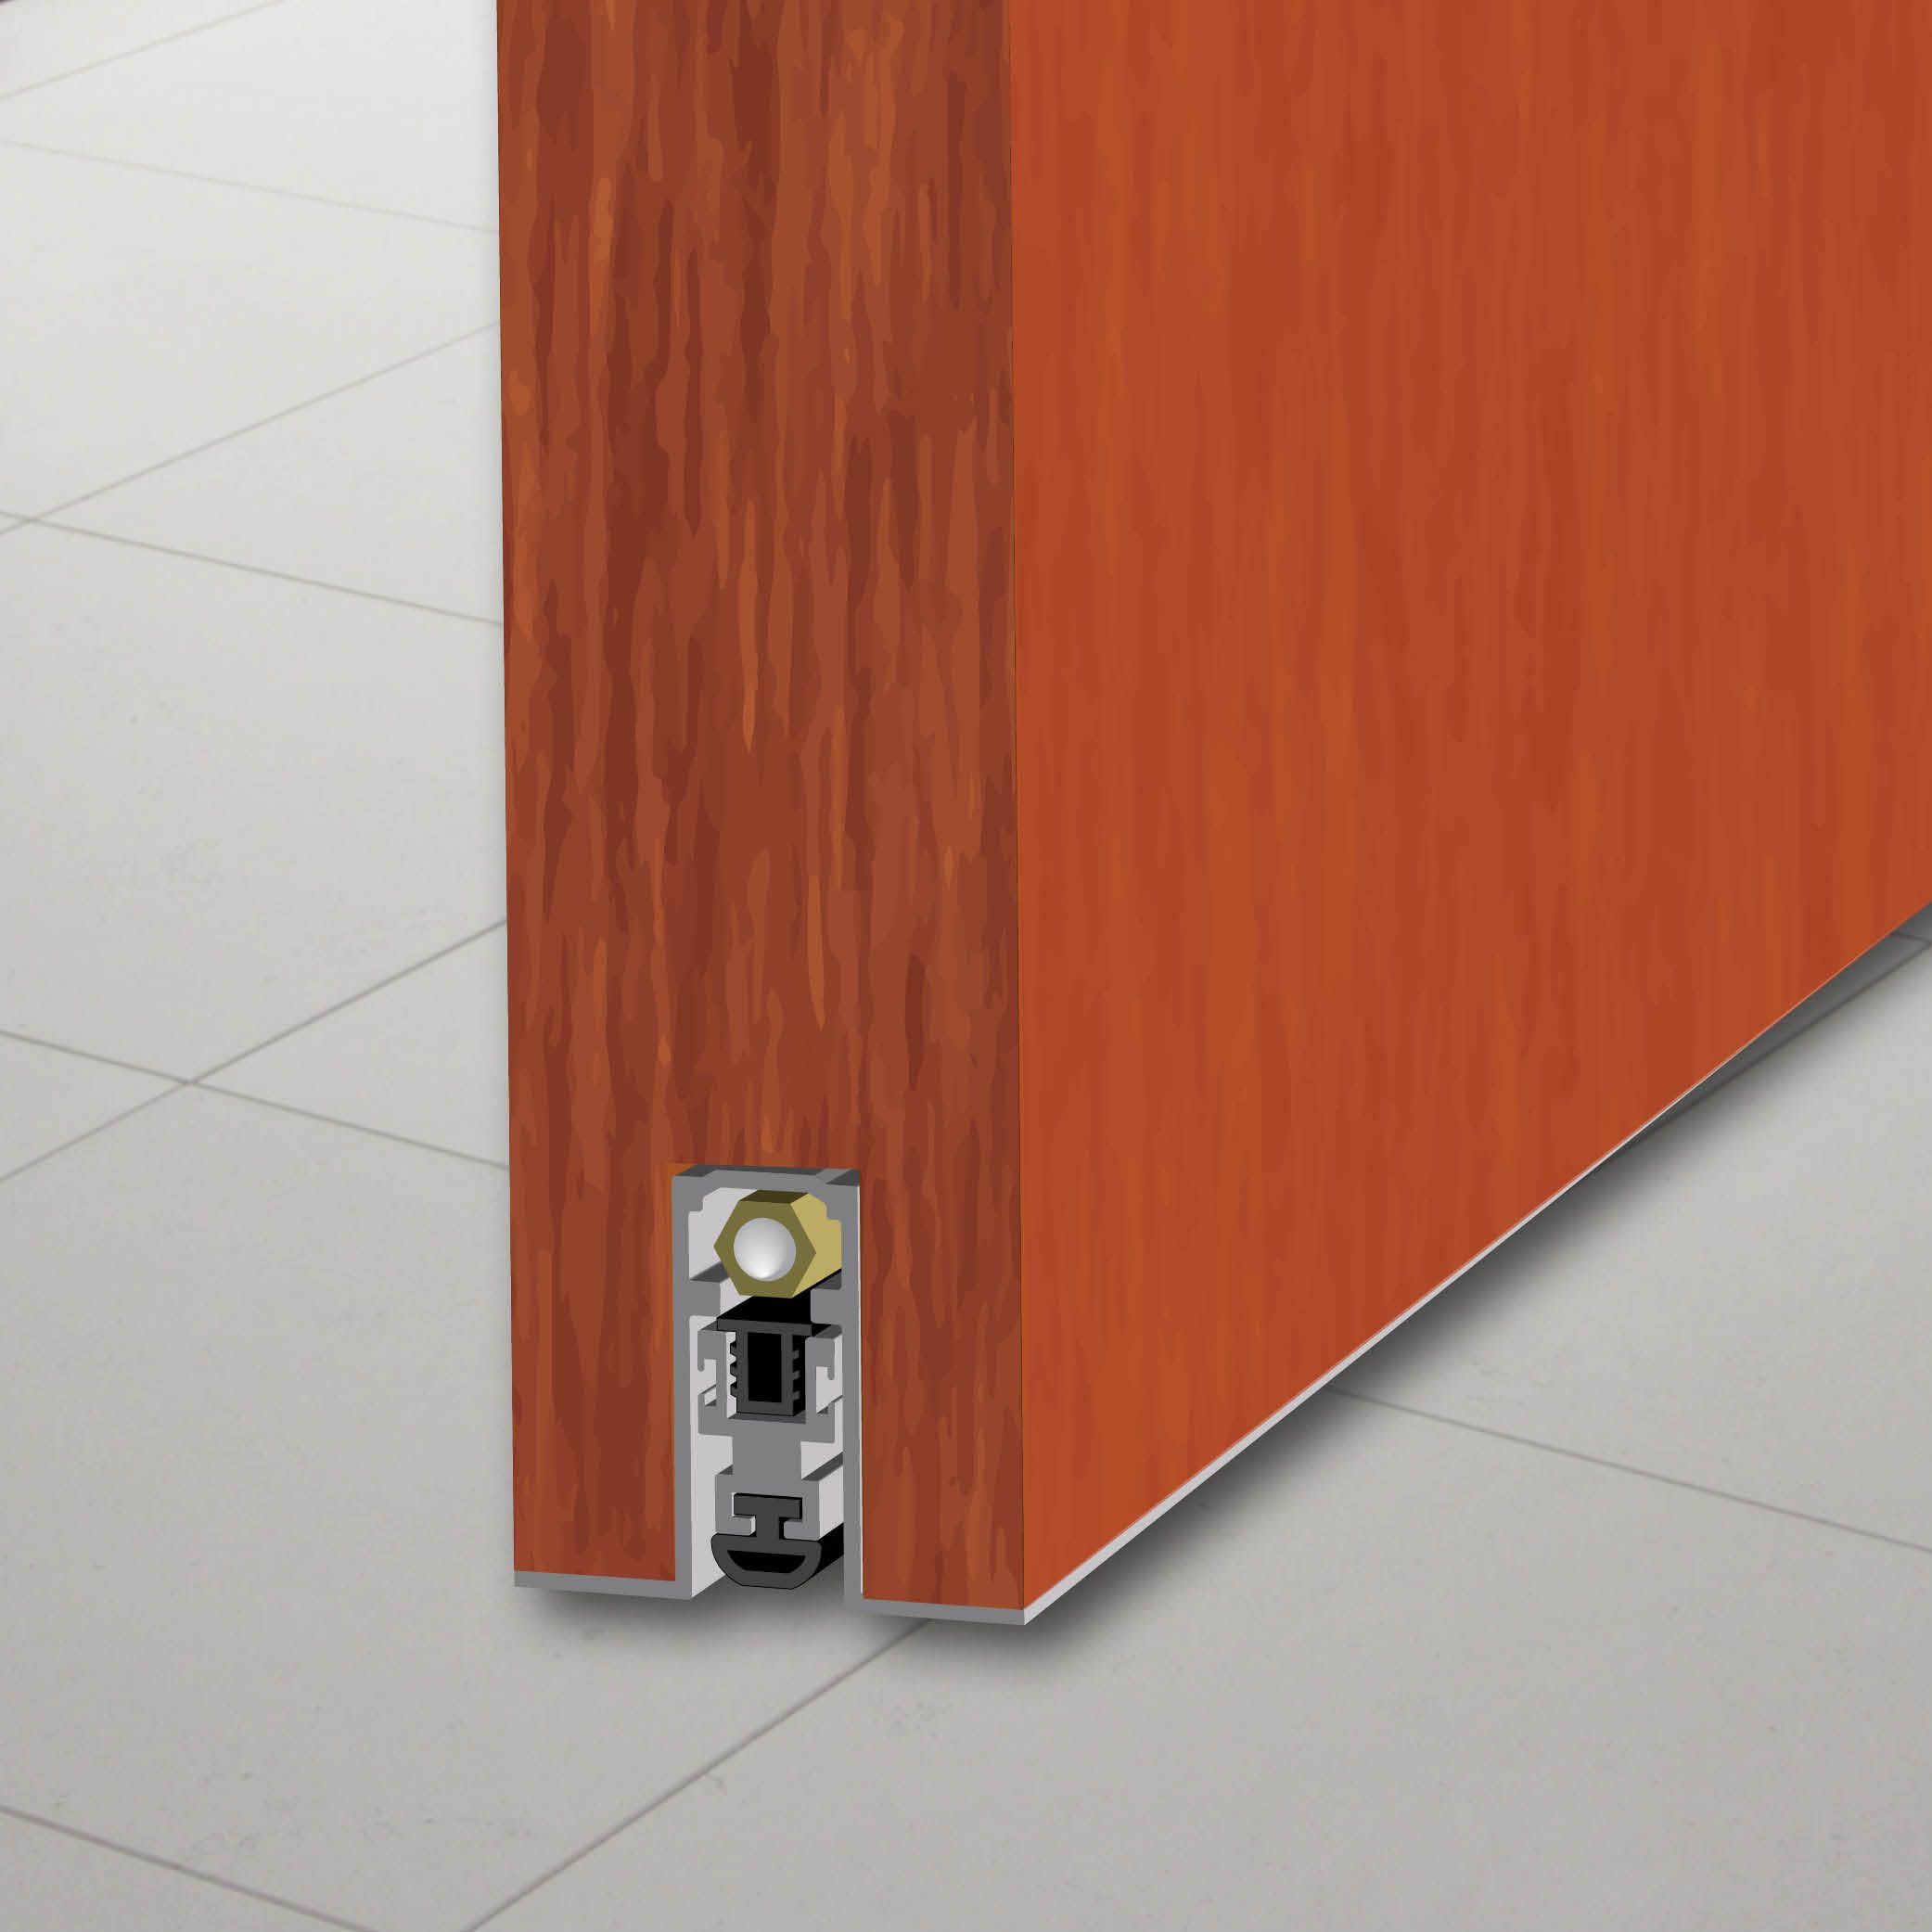 7053 Concealed Automatic Door Bottom Purchase From Legacy Llc Automatic Door Concealed Automatic